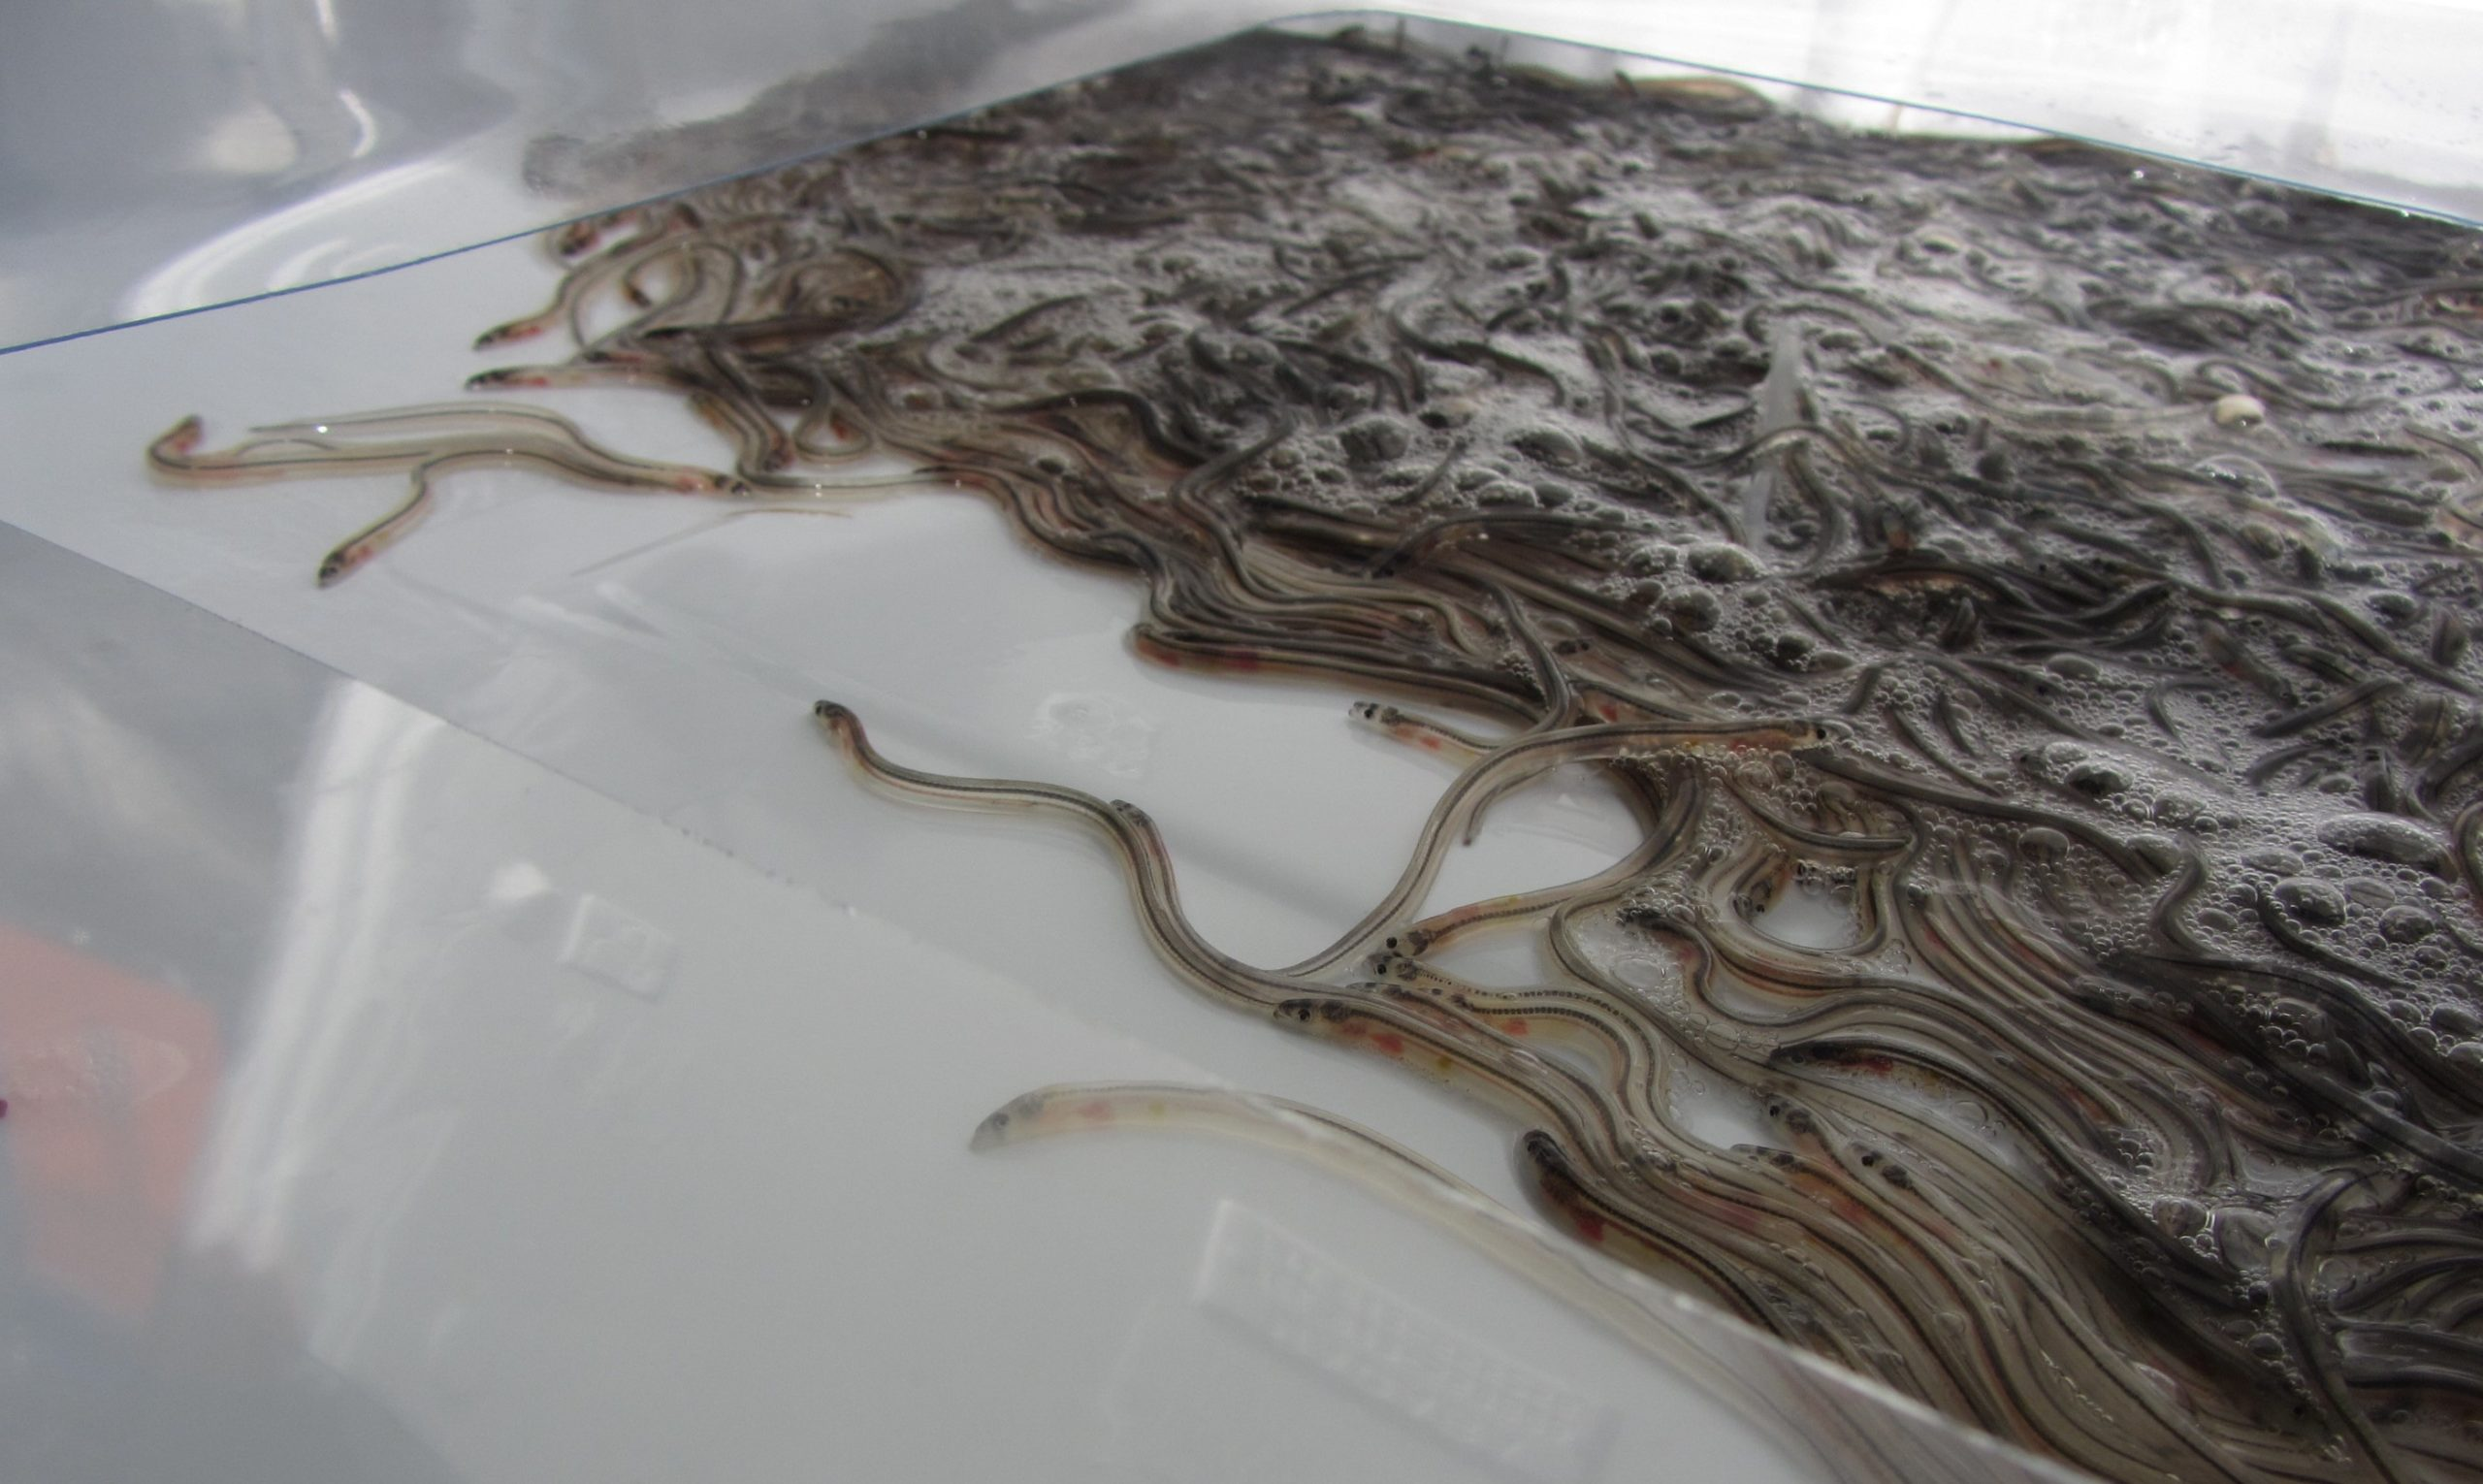 glass eels worth £53 million